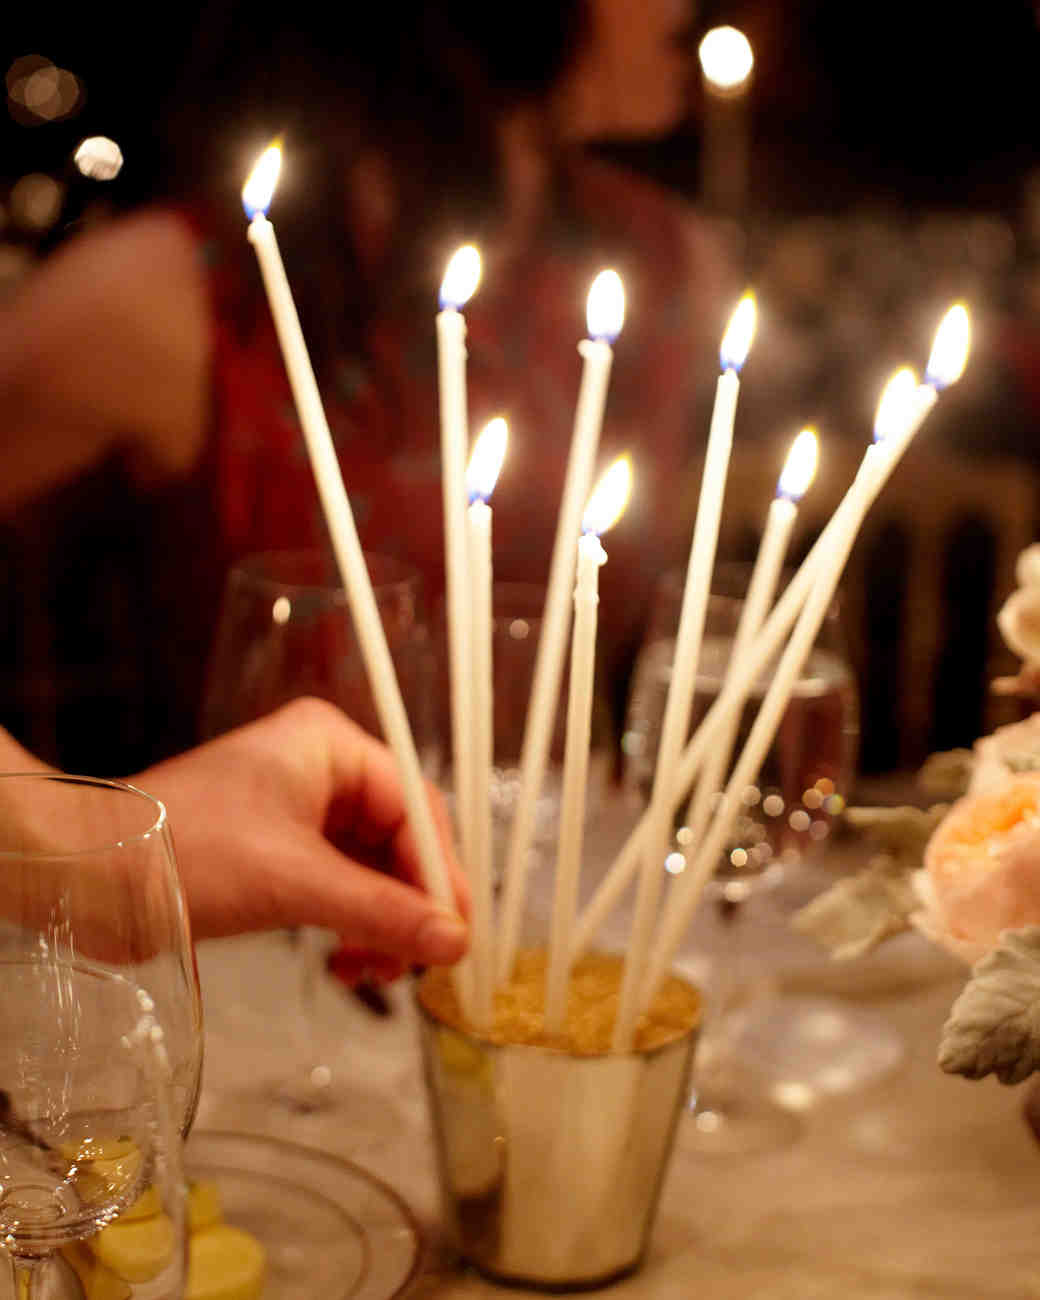 Candle Flower Centerpieces Wedding: 84 Candle Centerpieces That Will Light Up Your Reception